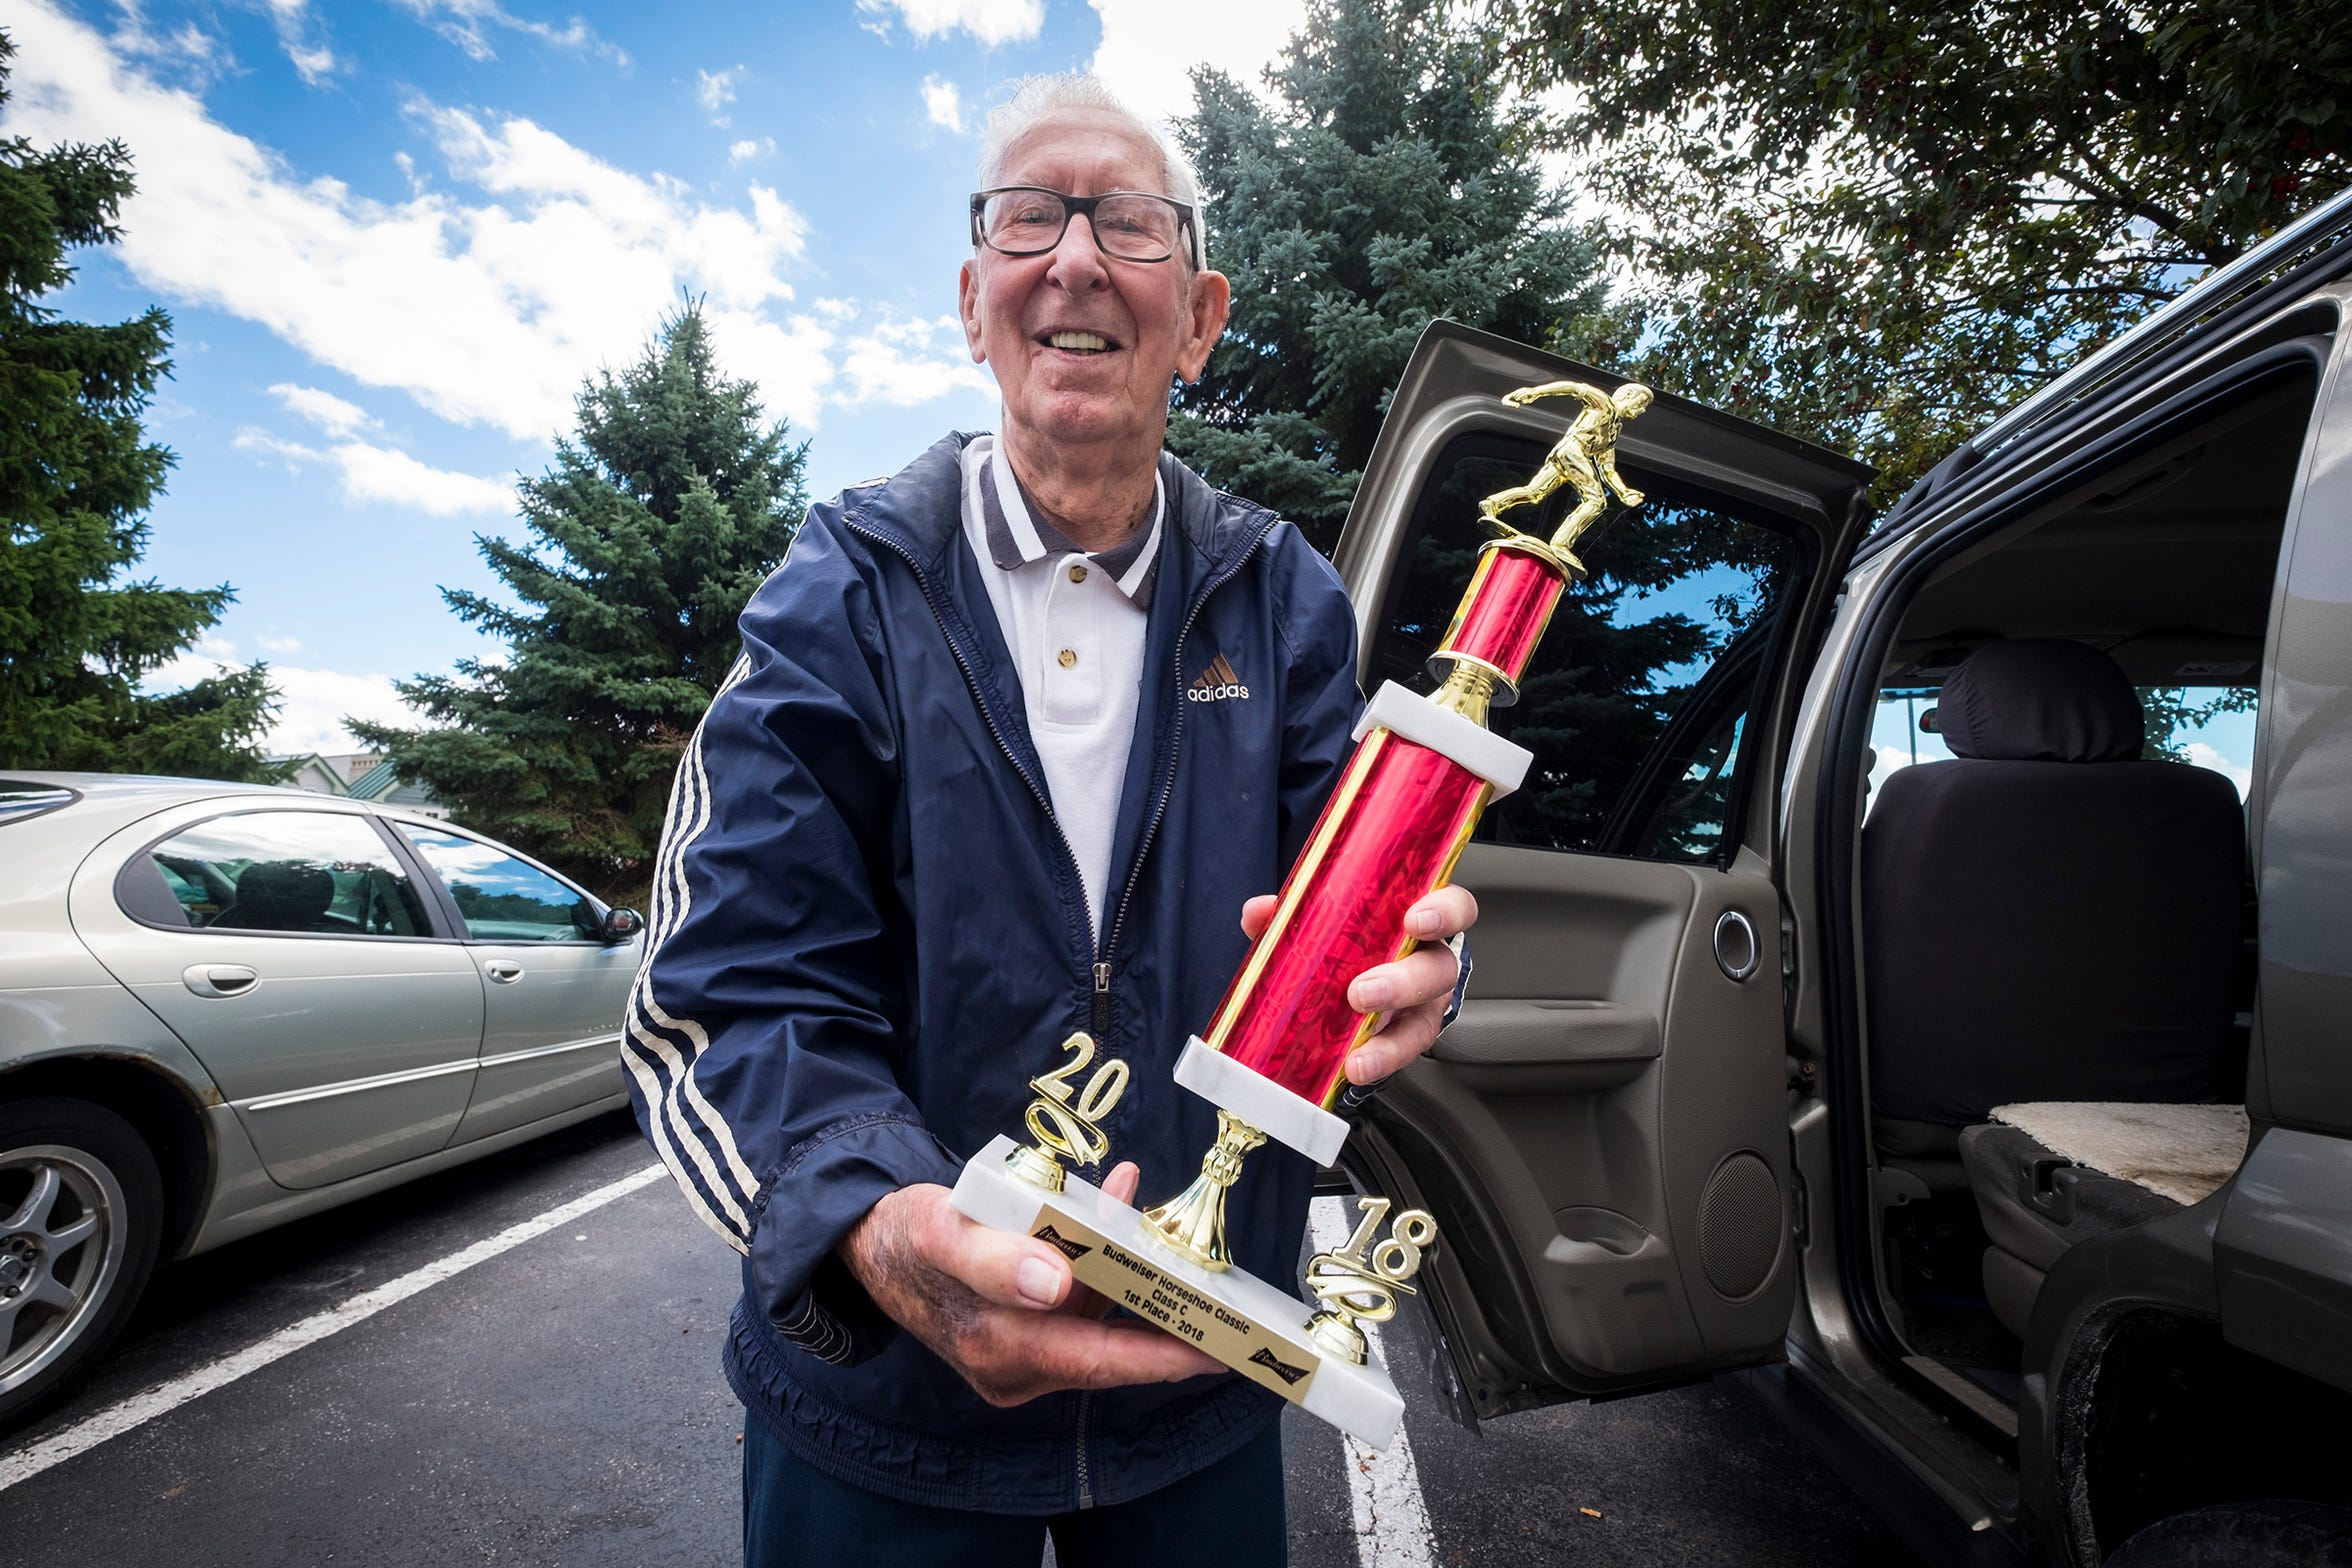 Bob Crorey, of China Township, shows off a trophy he won for placing first in the Budweiser Horseshoe Classic in 2018.